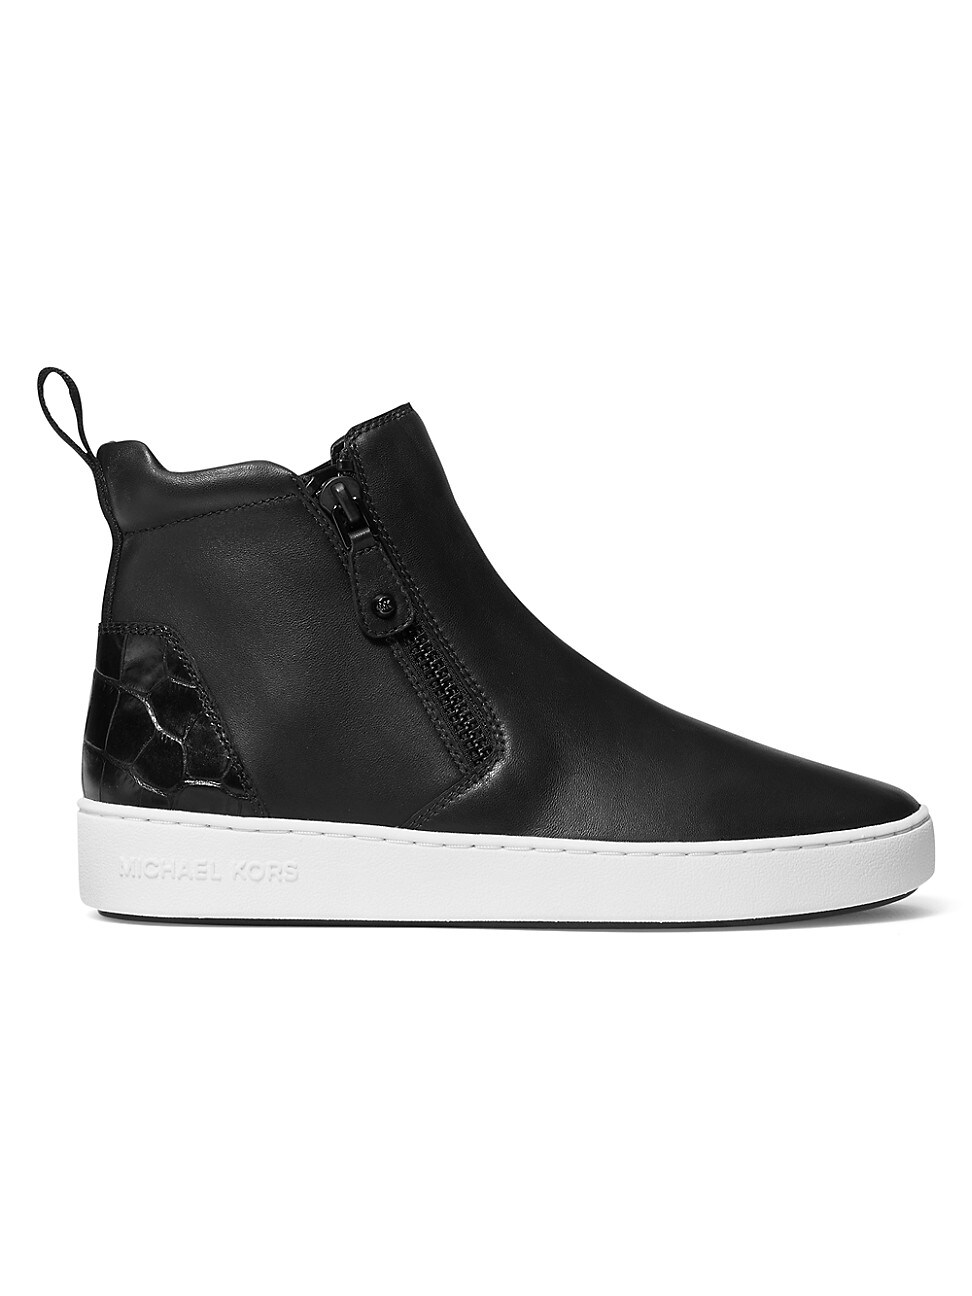 Michael Michael Kors WOMEN'S CLAY HIGH-TOP LEATHER SNEAKERS